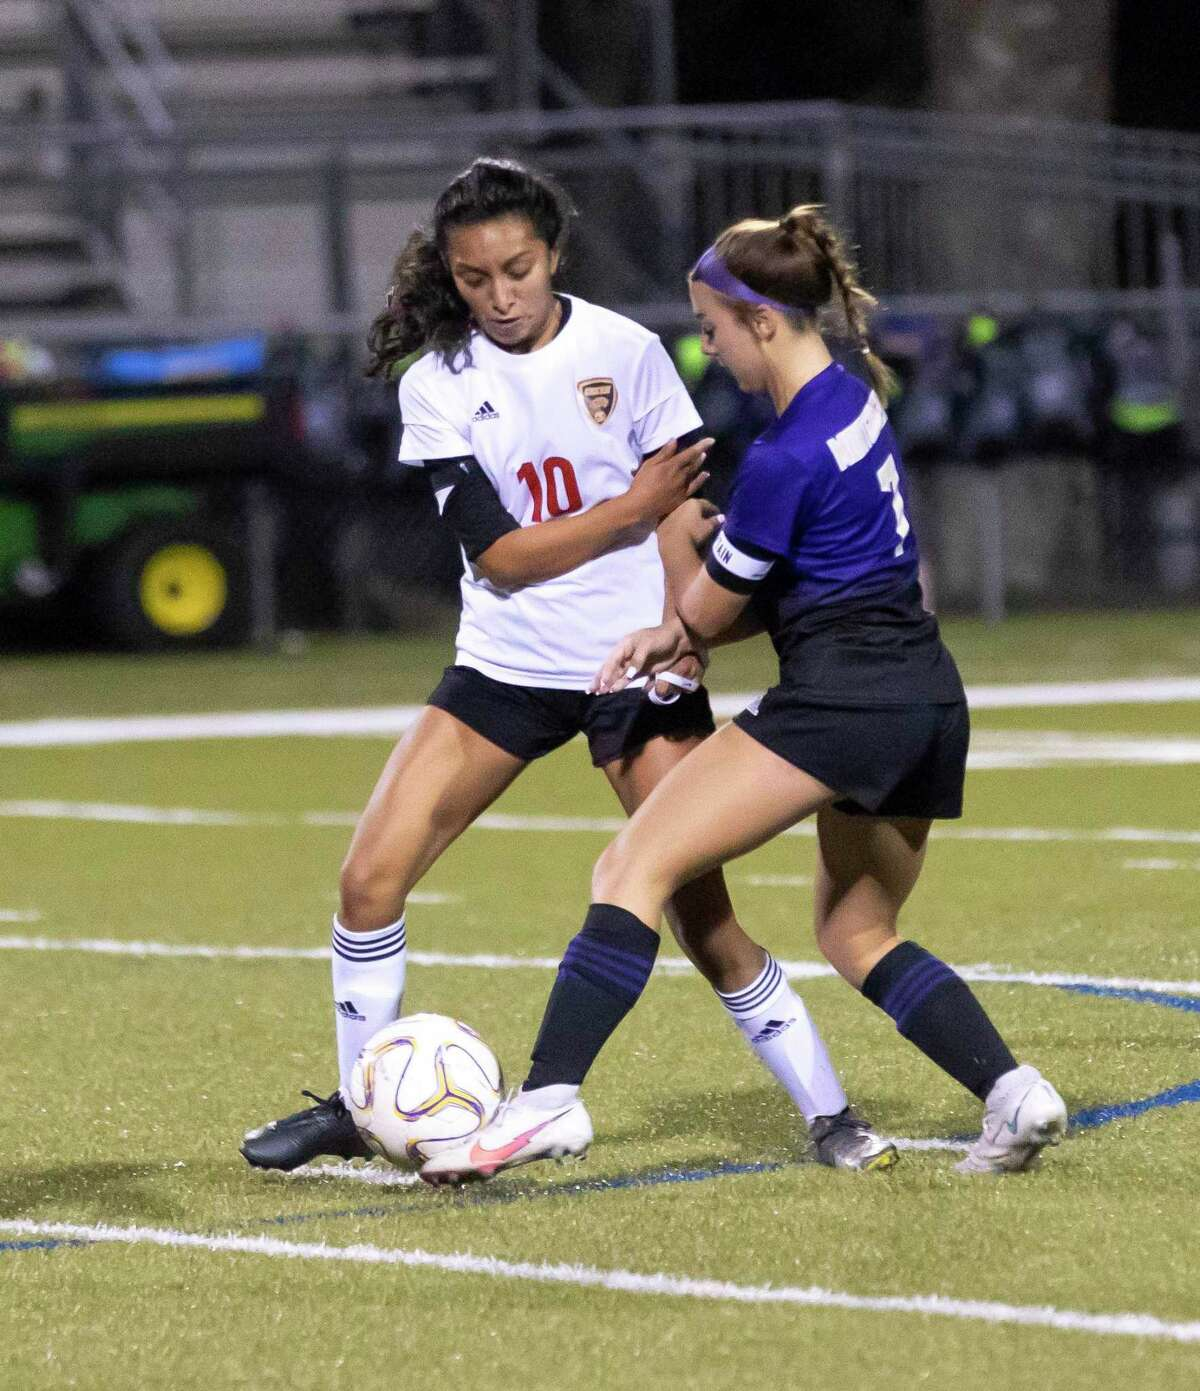 Caney Creek senior Julie Mendoza (10) Montgomery junior Makenzie Griffith (7) both earned District 20-5A superlatives following the 2021 season. Mendoza was the Midfielder MVP and Griffith was the Offensive MVP.